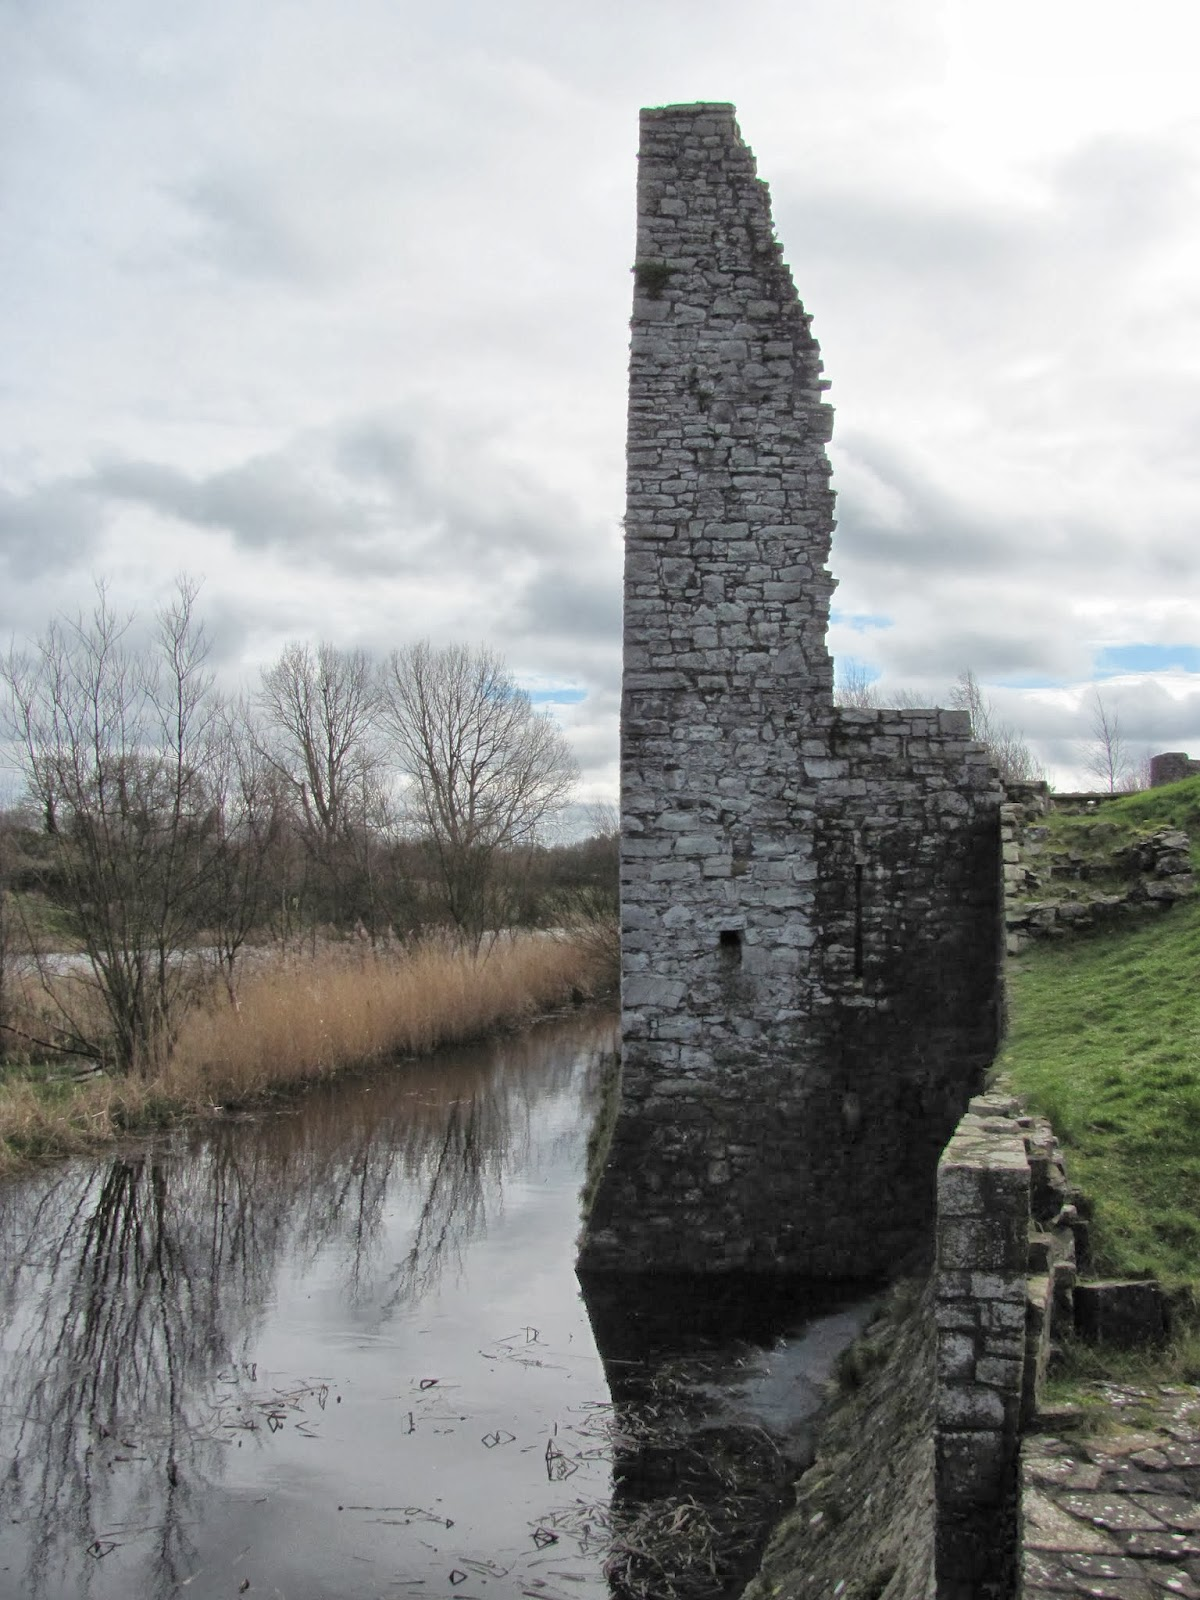 Part of a tower of the exterior wall stands along the moat of Trim Castle in Trim, Ireland